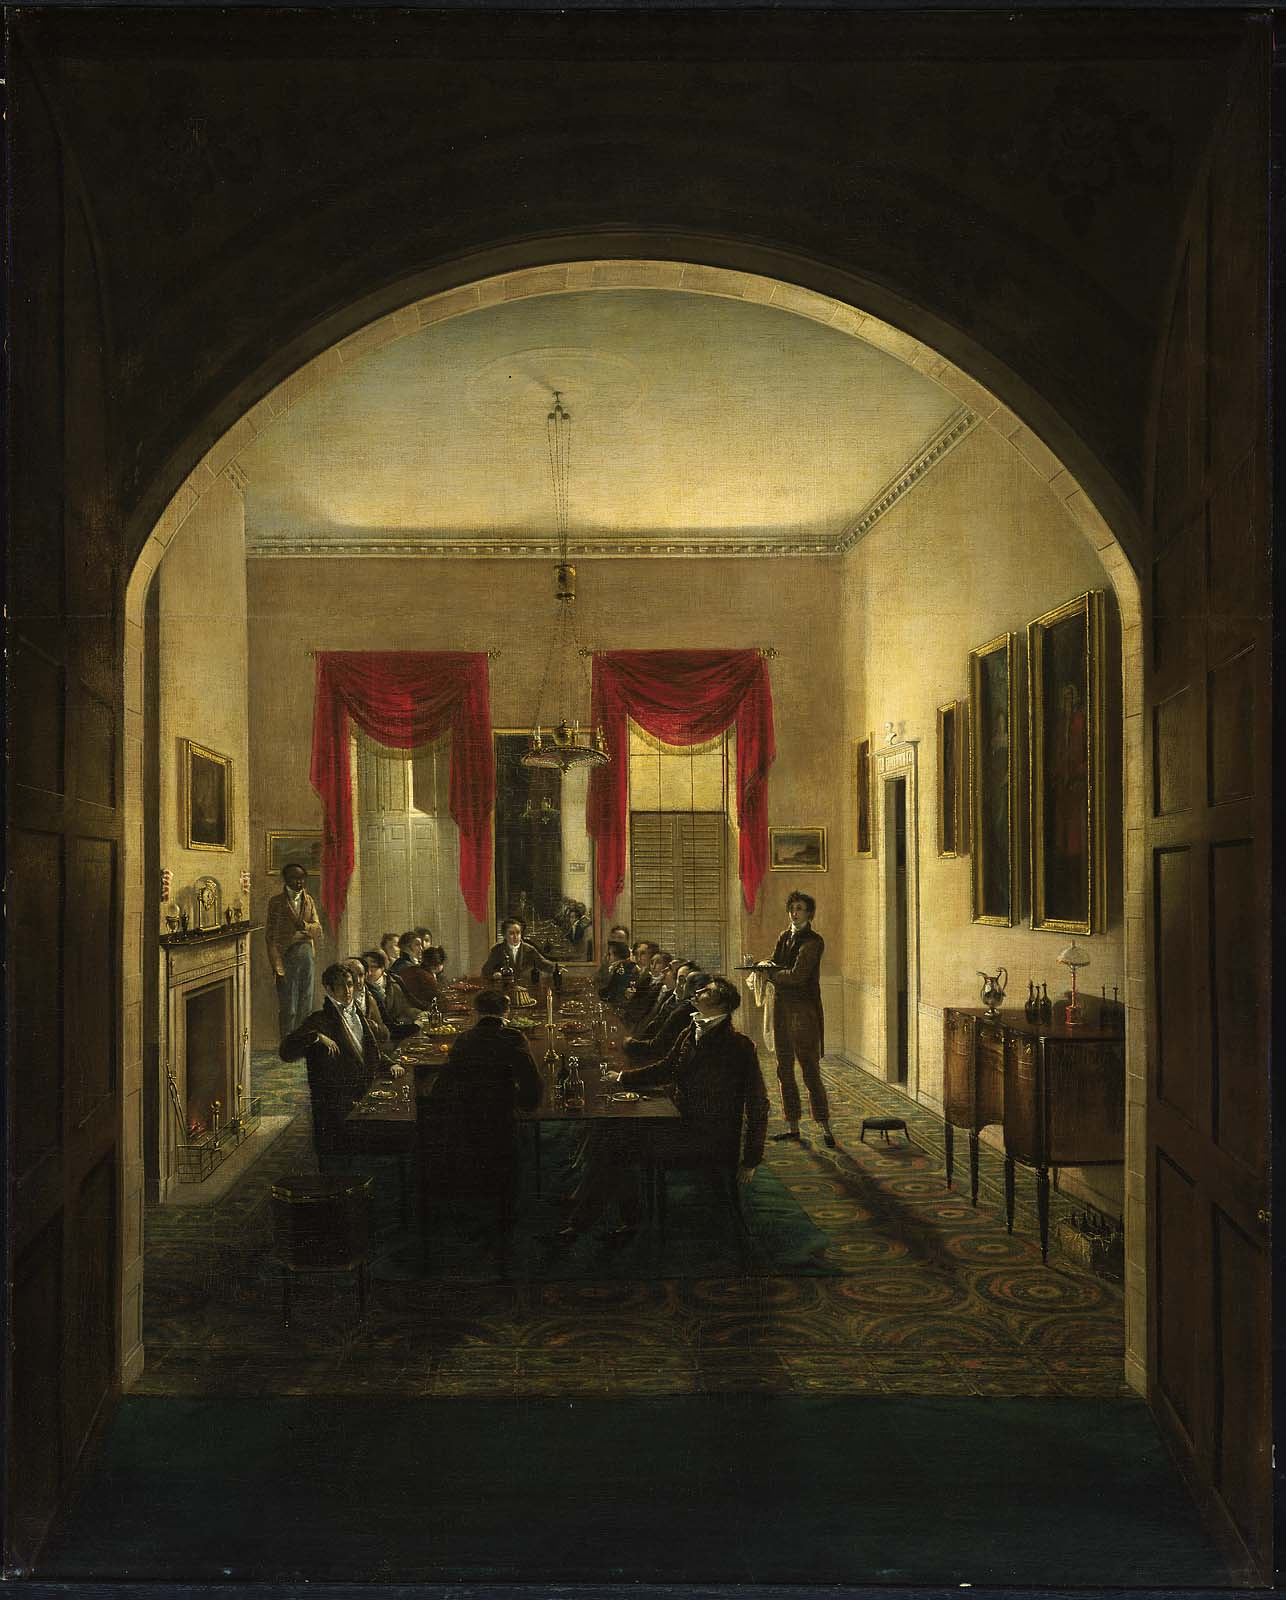 Henry Sargent, The Dinner Party, ca. 1821